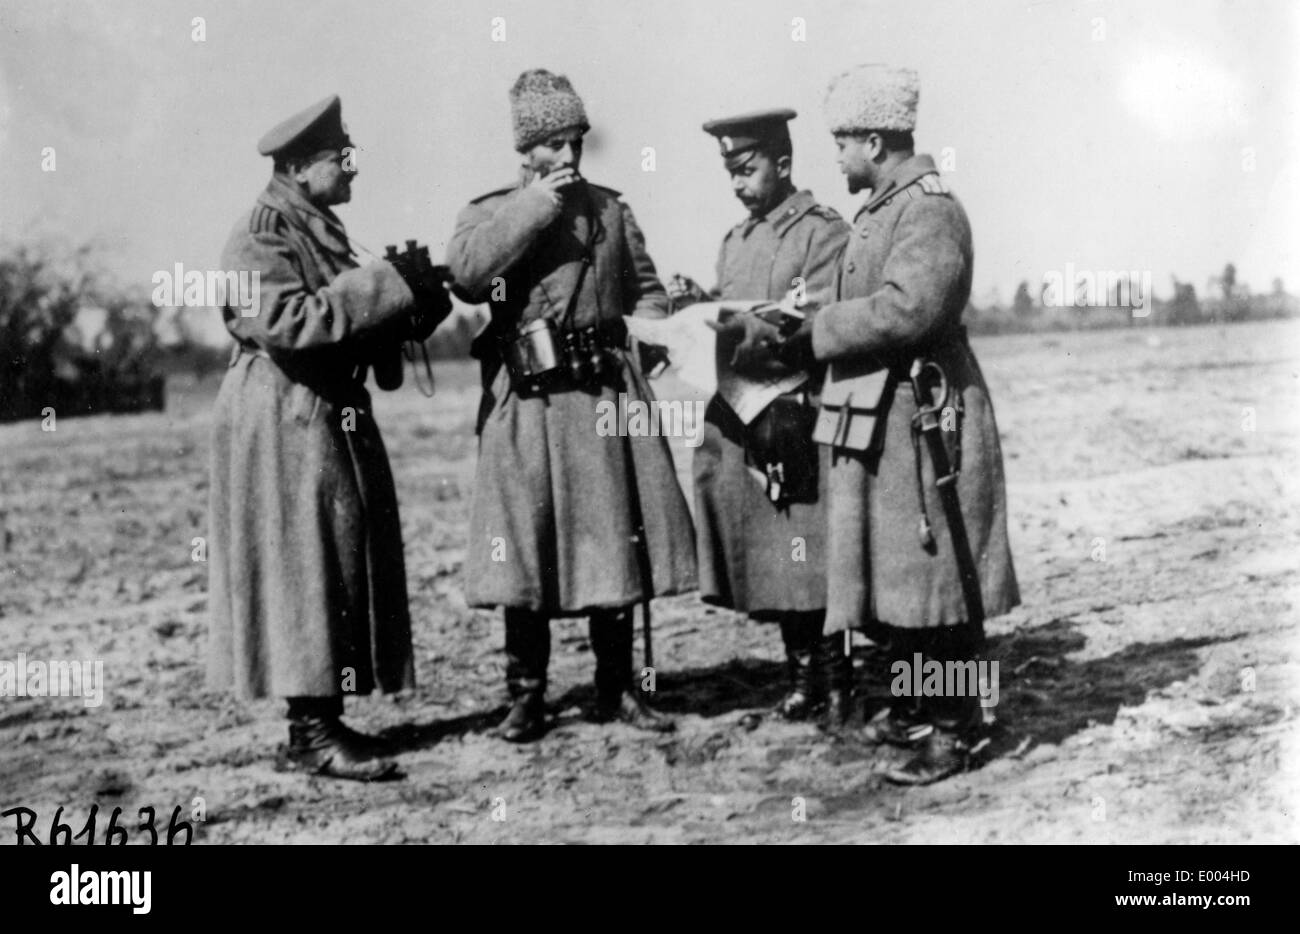 Russian infantry division staff - Stock Image